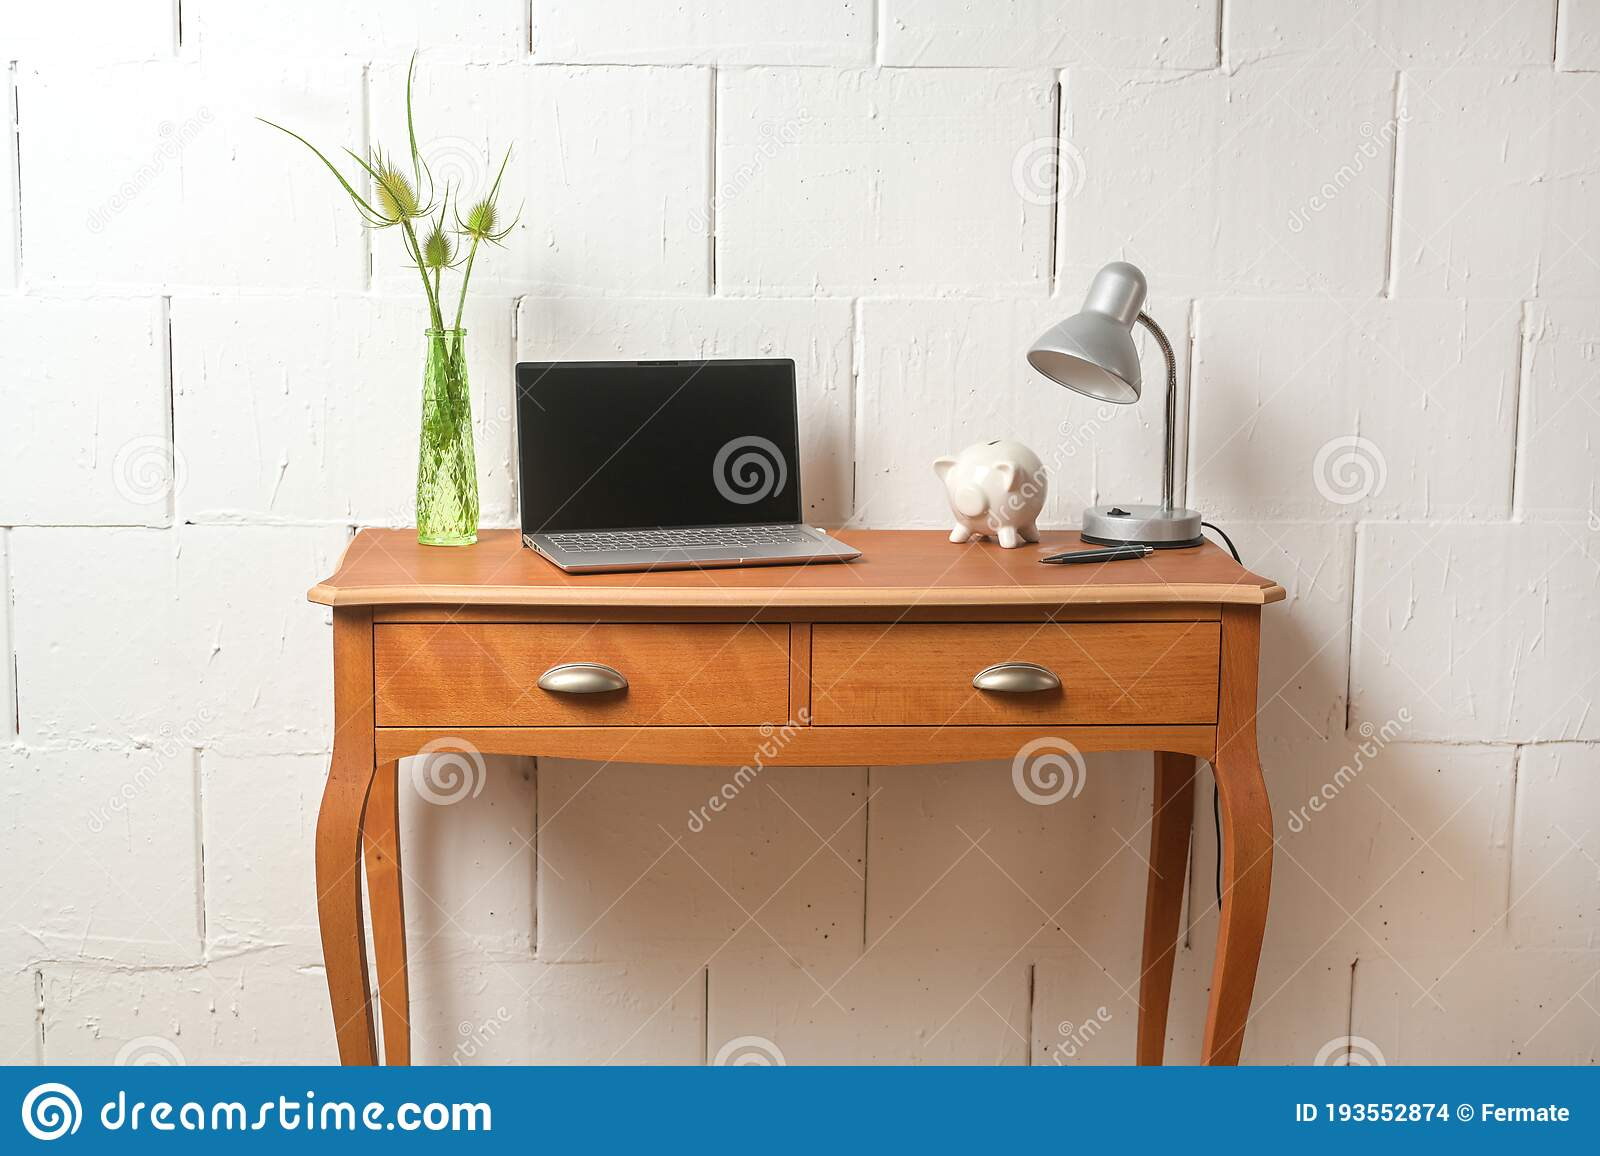 Small Wooden Console Table With Laptop Desk Lamp And A Piggy Bank As A Place For A Tiny Home Office Against A Bare White Wall Stock Photo Image Of Laptop Decoration